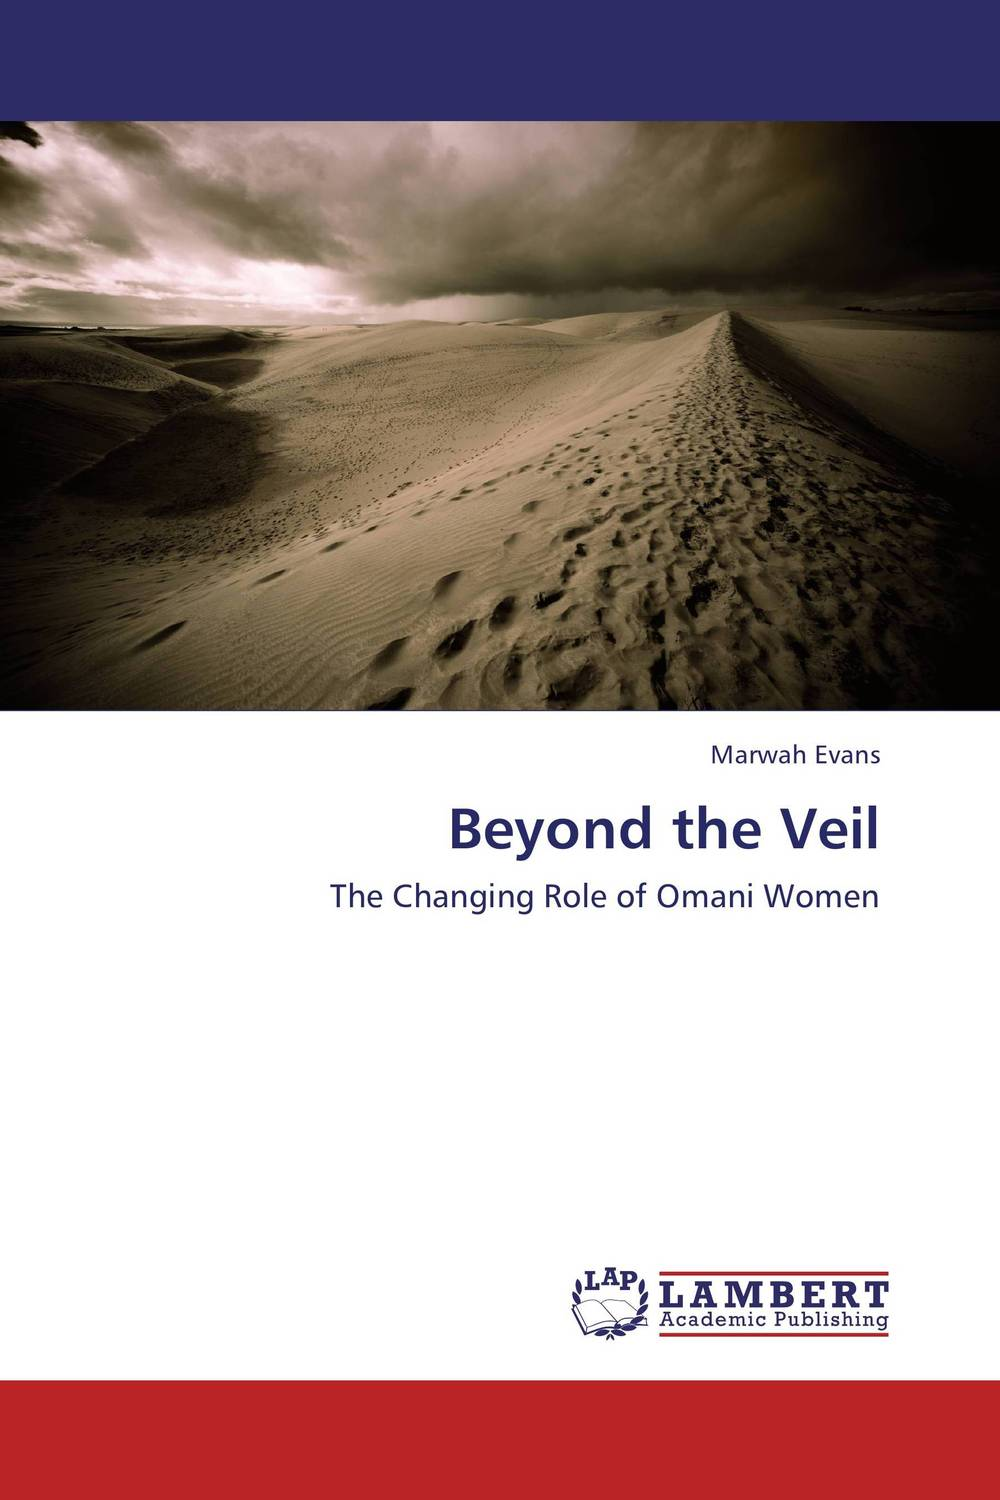 Beyond the Veil zeinab torkaman dehnavi integration in canada of muslim women immigrants from the middle east